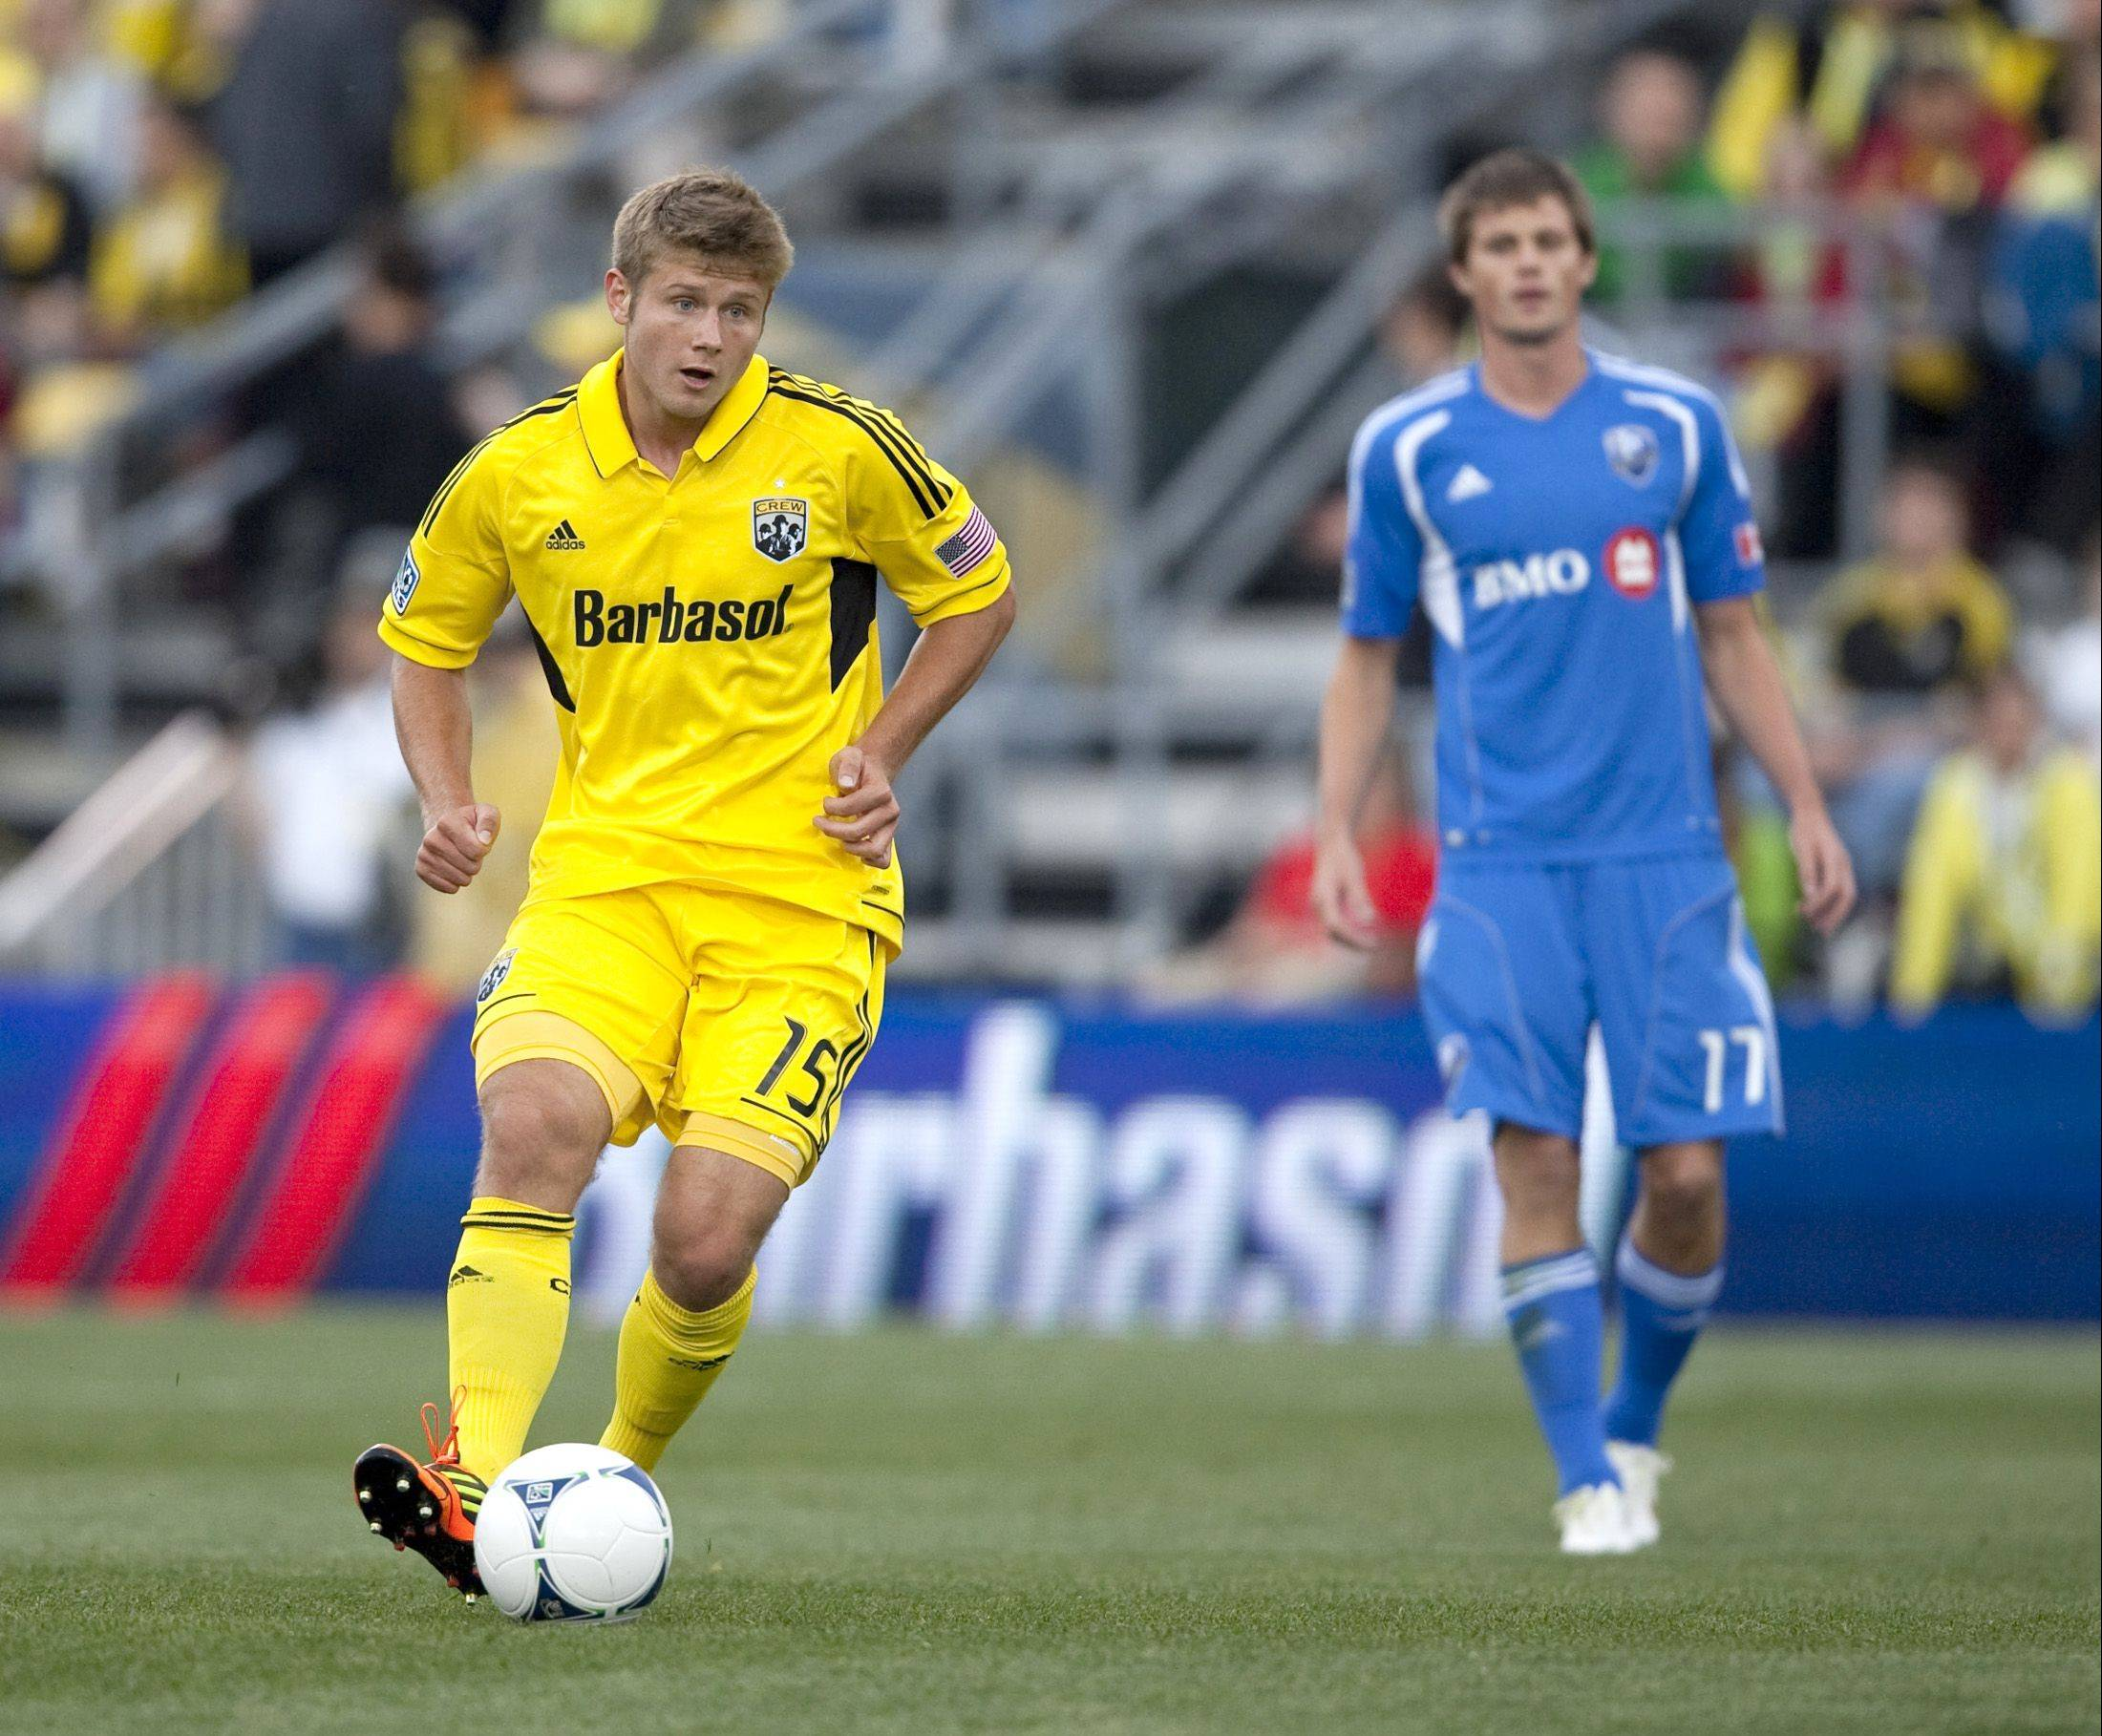 Columbus Crew midfielder Kirk Urso, left, handles the ball against the Montreal Impact in the opening game of the MLS season at Crew Stadium in Columbus on March 24, 2012. Urso died at an Ohio hospital after collapsing at a restaurant/bar early Sunday.